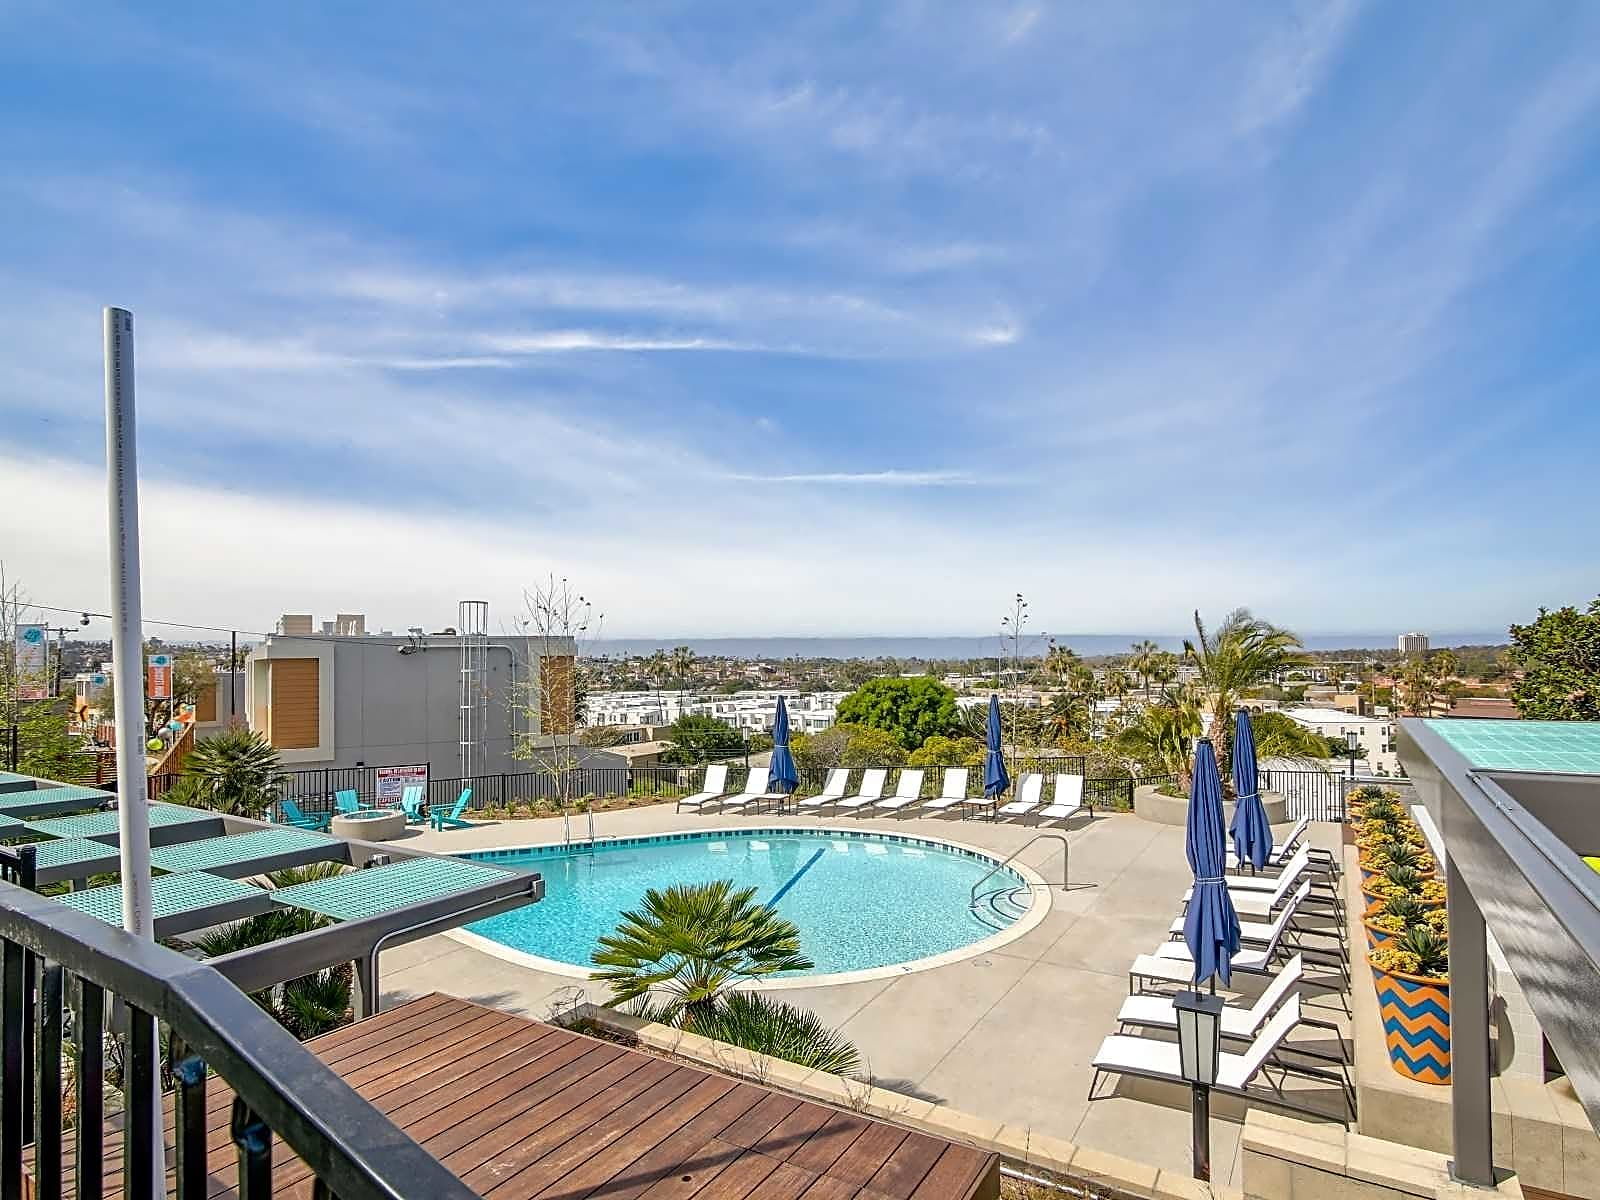 Apartments Near PLNU Loma 21 for Point Loma Nazarene University Students in San Diego, CA